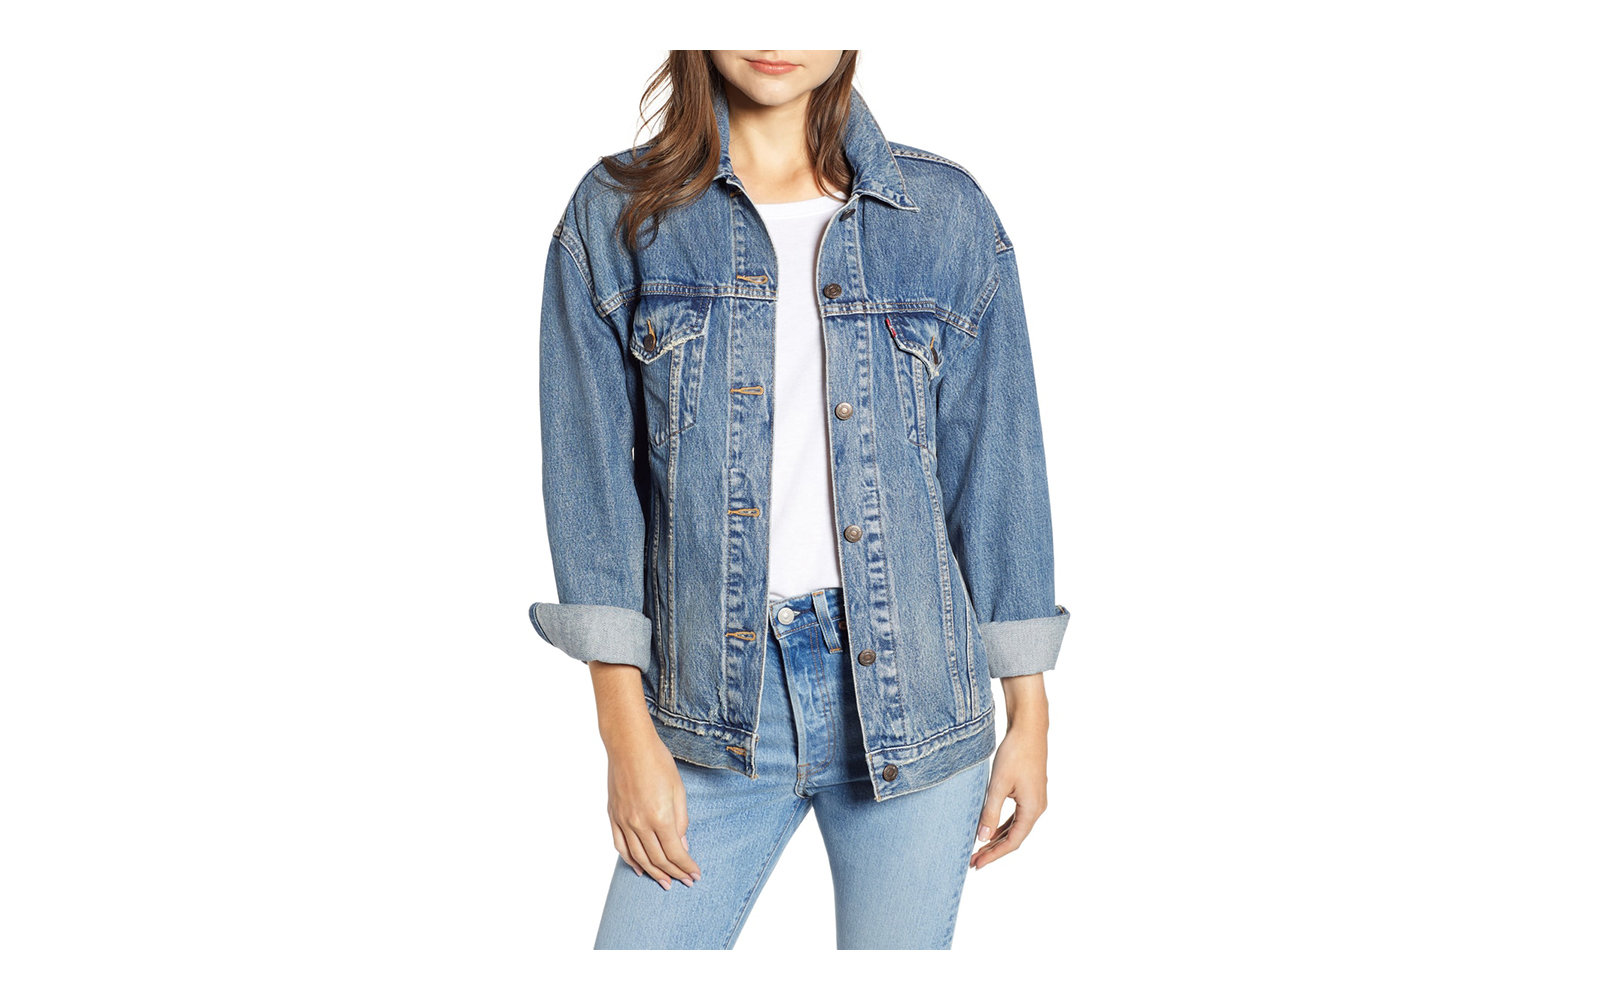 91f4289e3a1 The Best Denim Jackets for Women